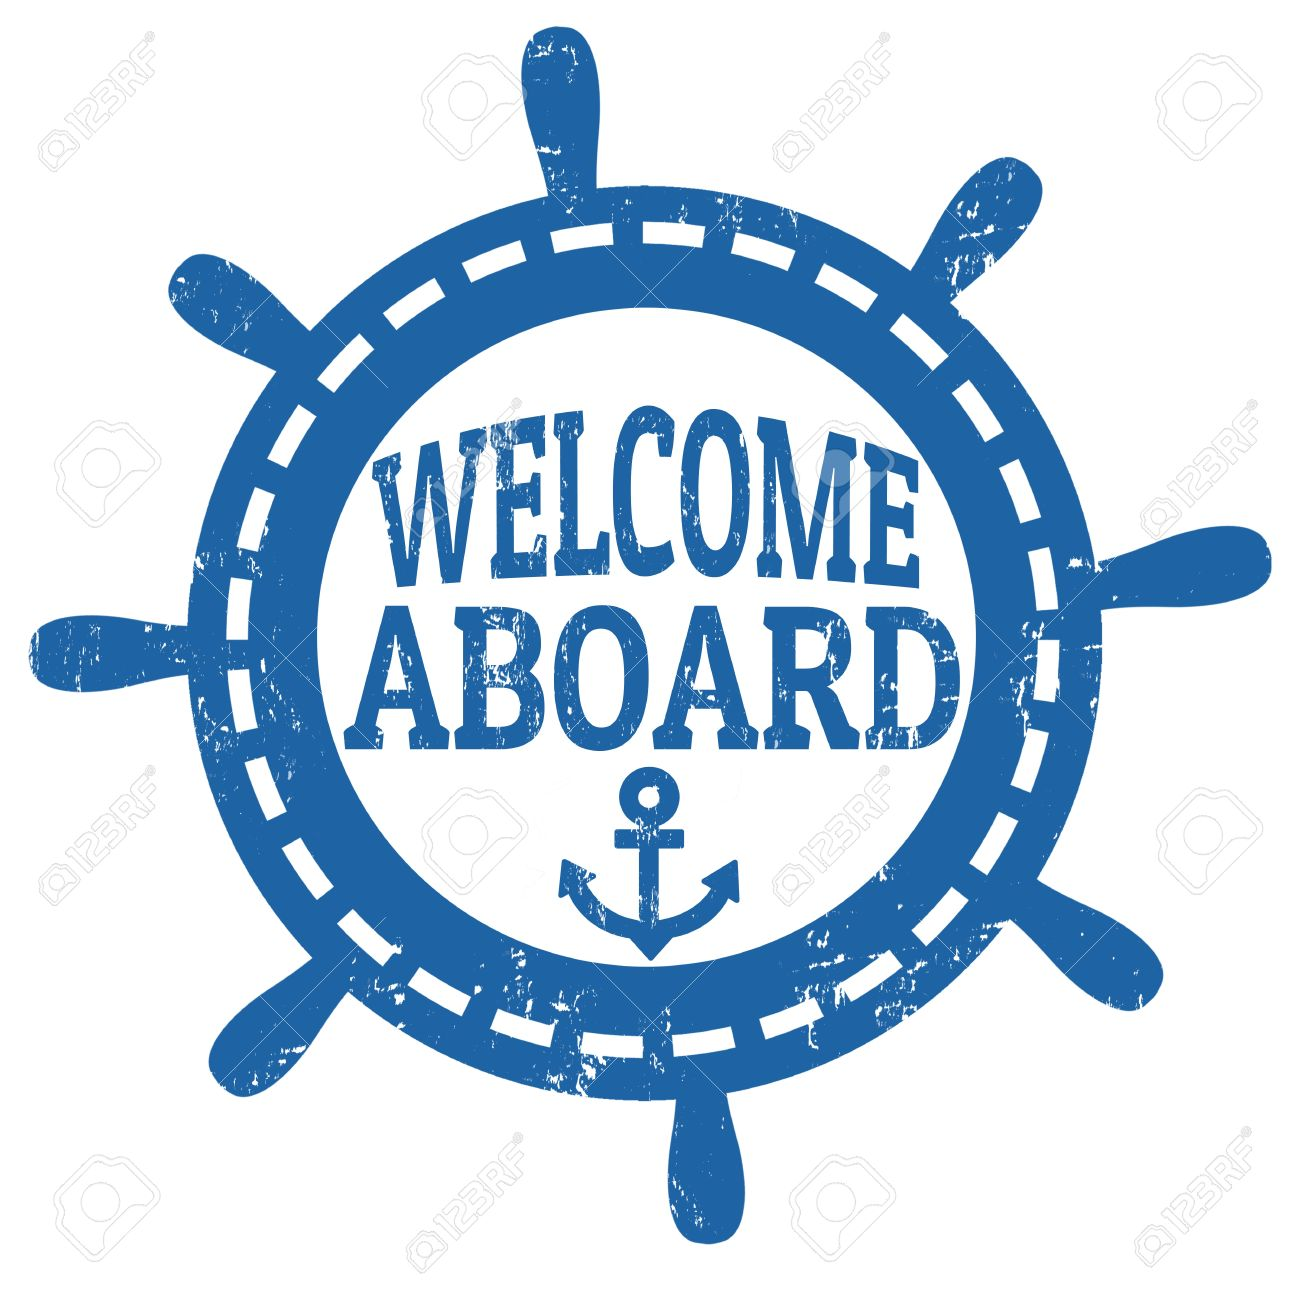 NEW MEMBER UPDATE……. WOW! EVERYONE IS JOINING THE YACHT CLUB.